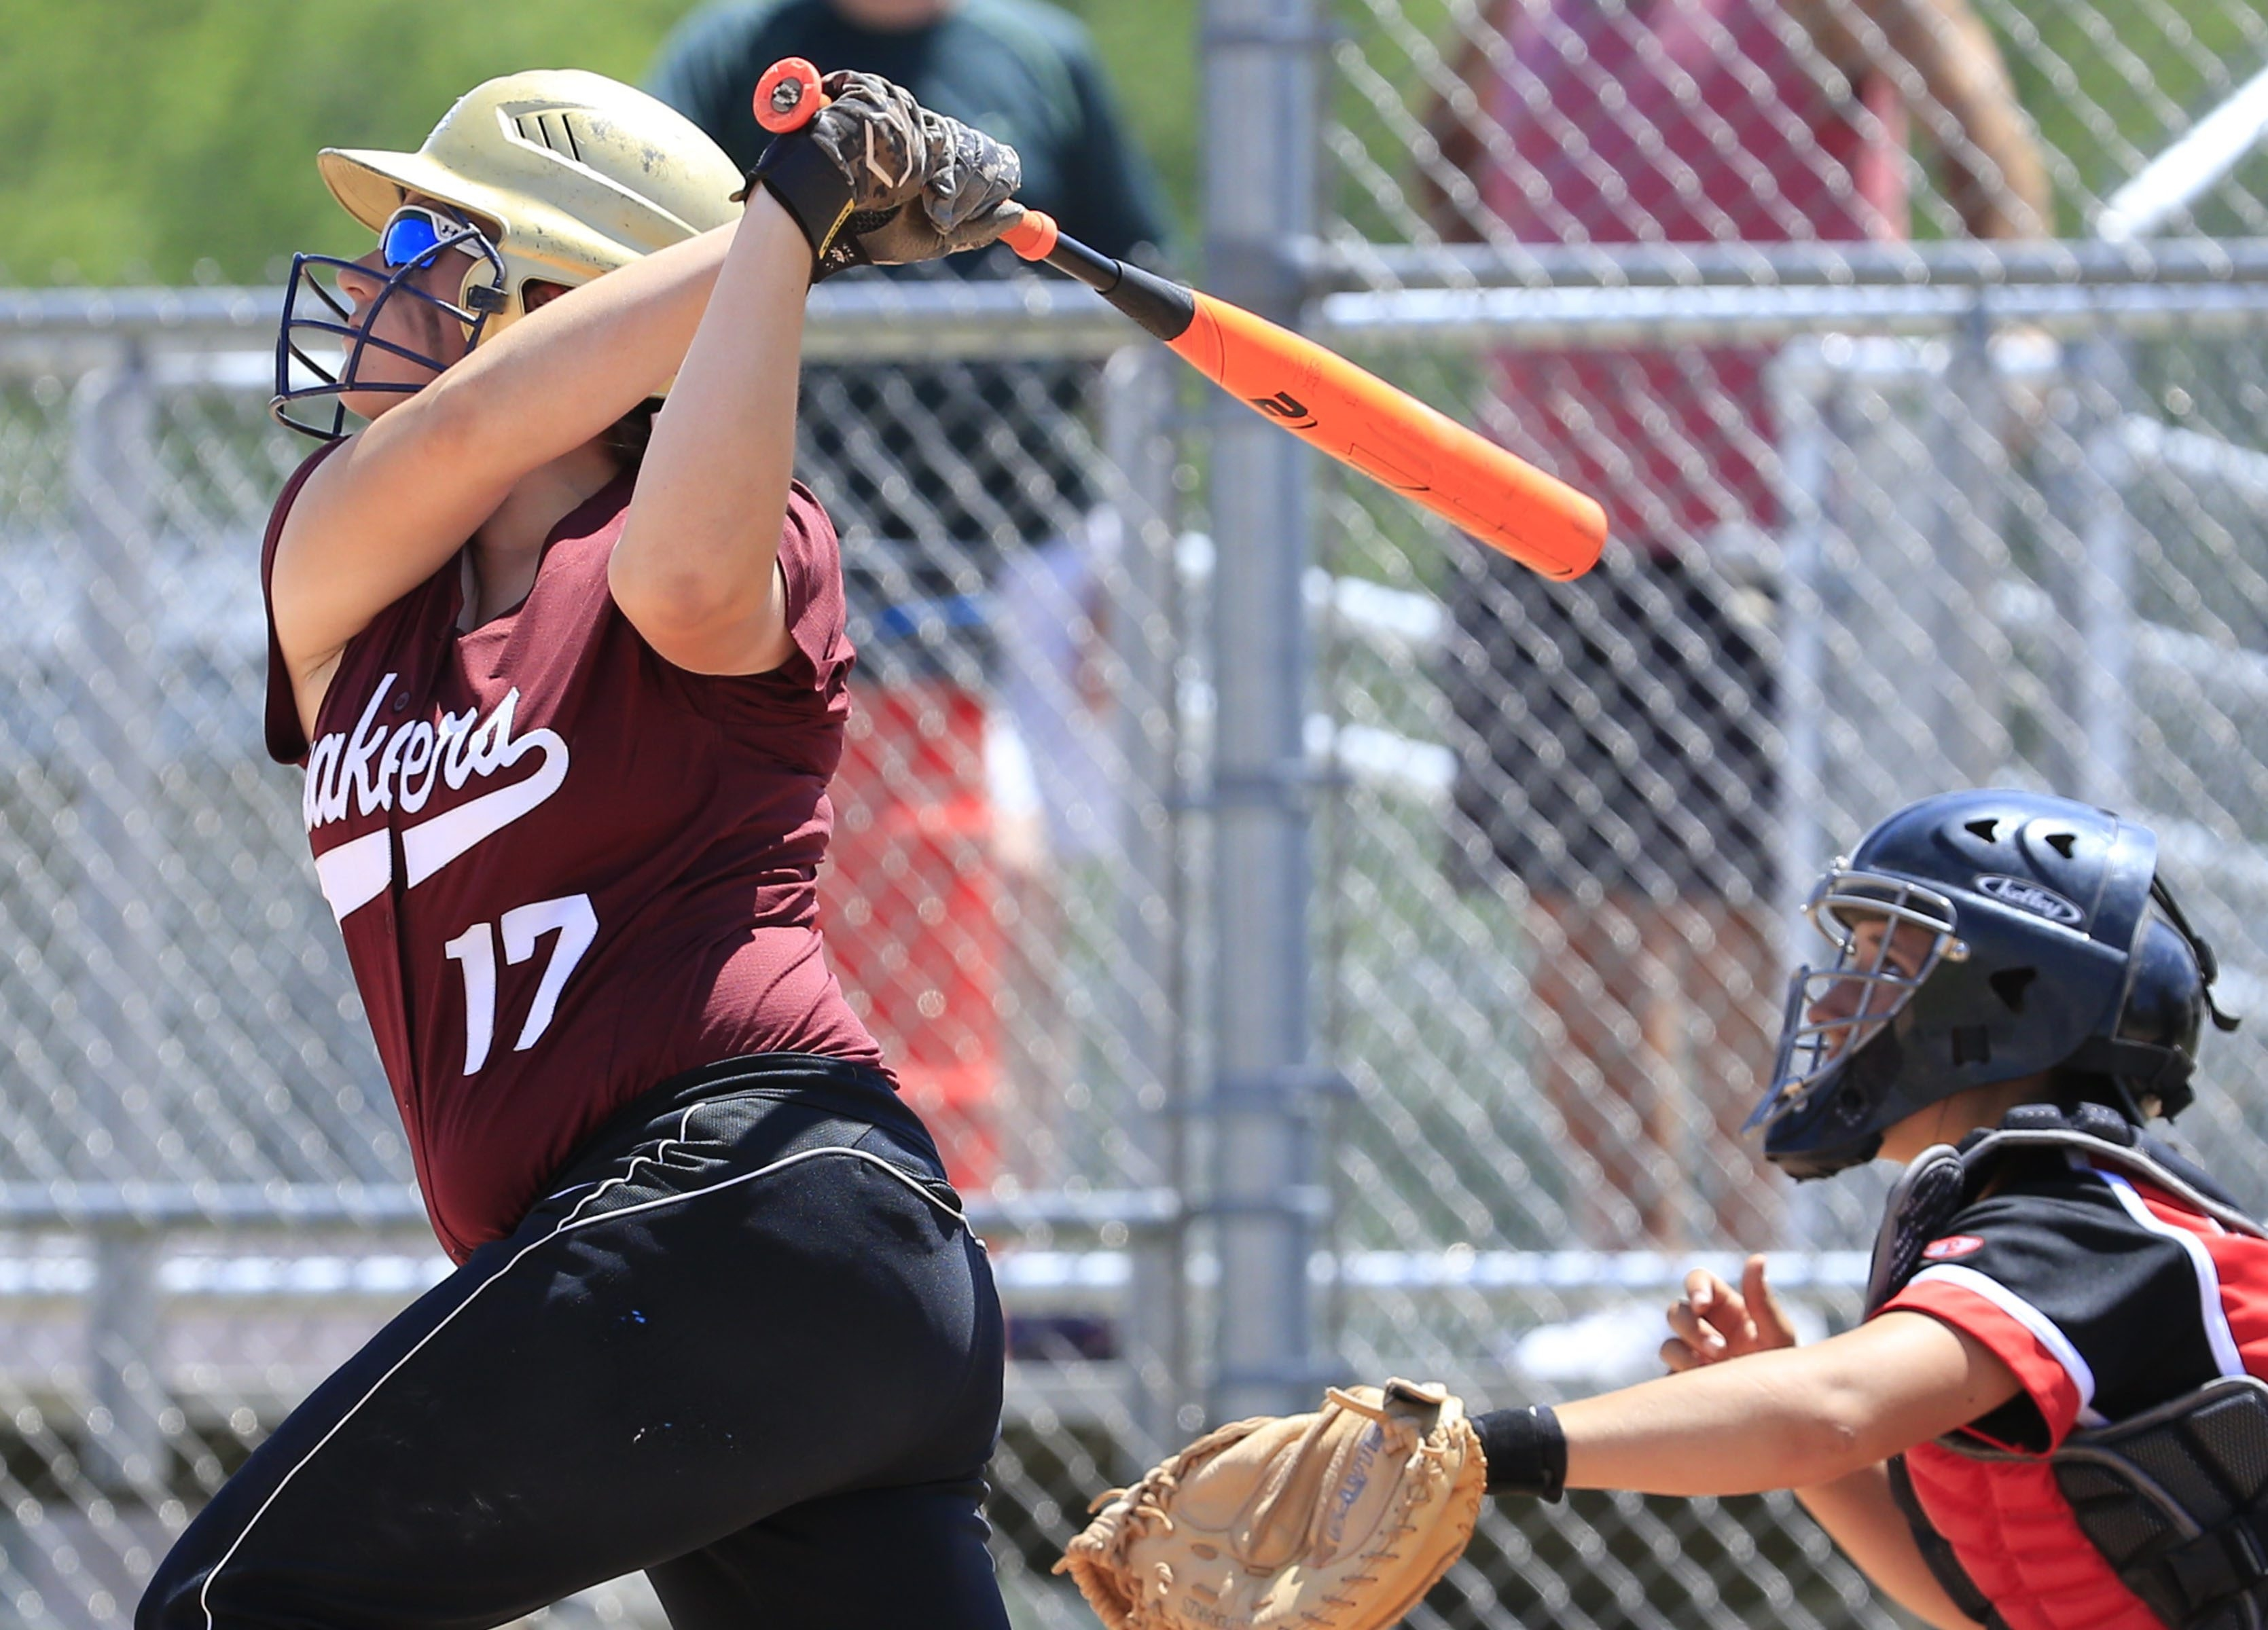 Katie Weimer not only led Orchard Park to its first state title but also earned Class AA state player of the year honors.